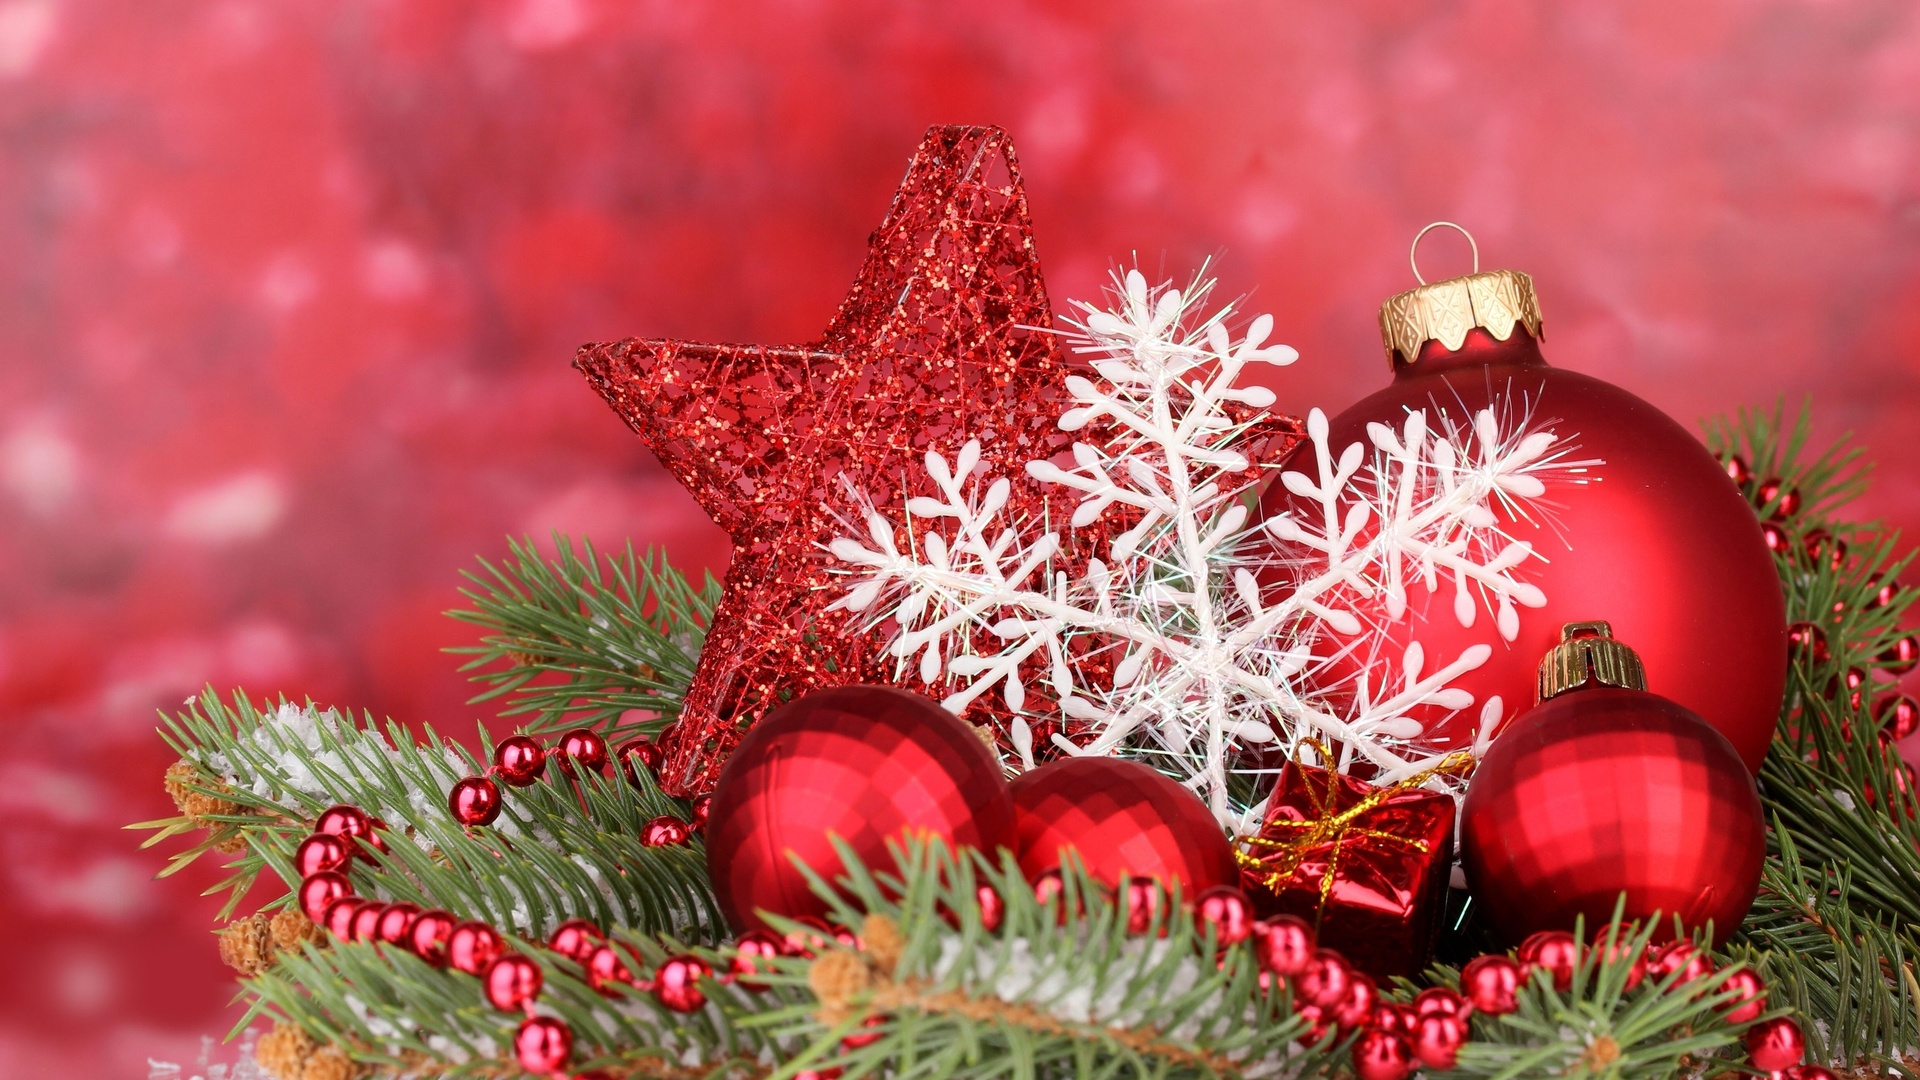 Best Of Animated Christmas Desktop Wallpaper Free Download